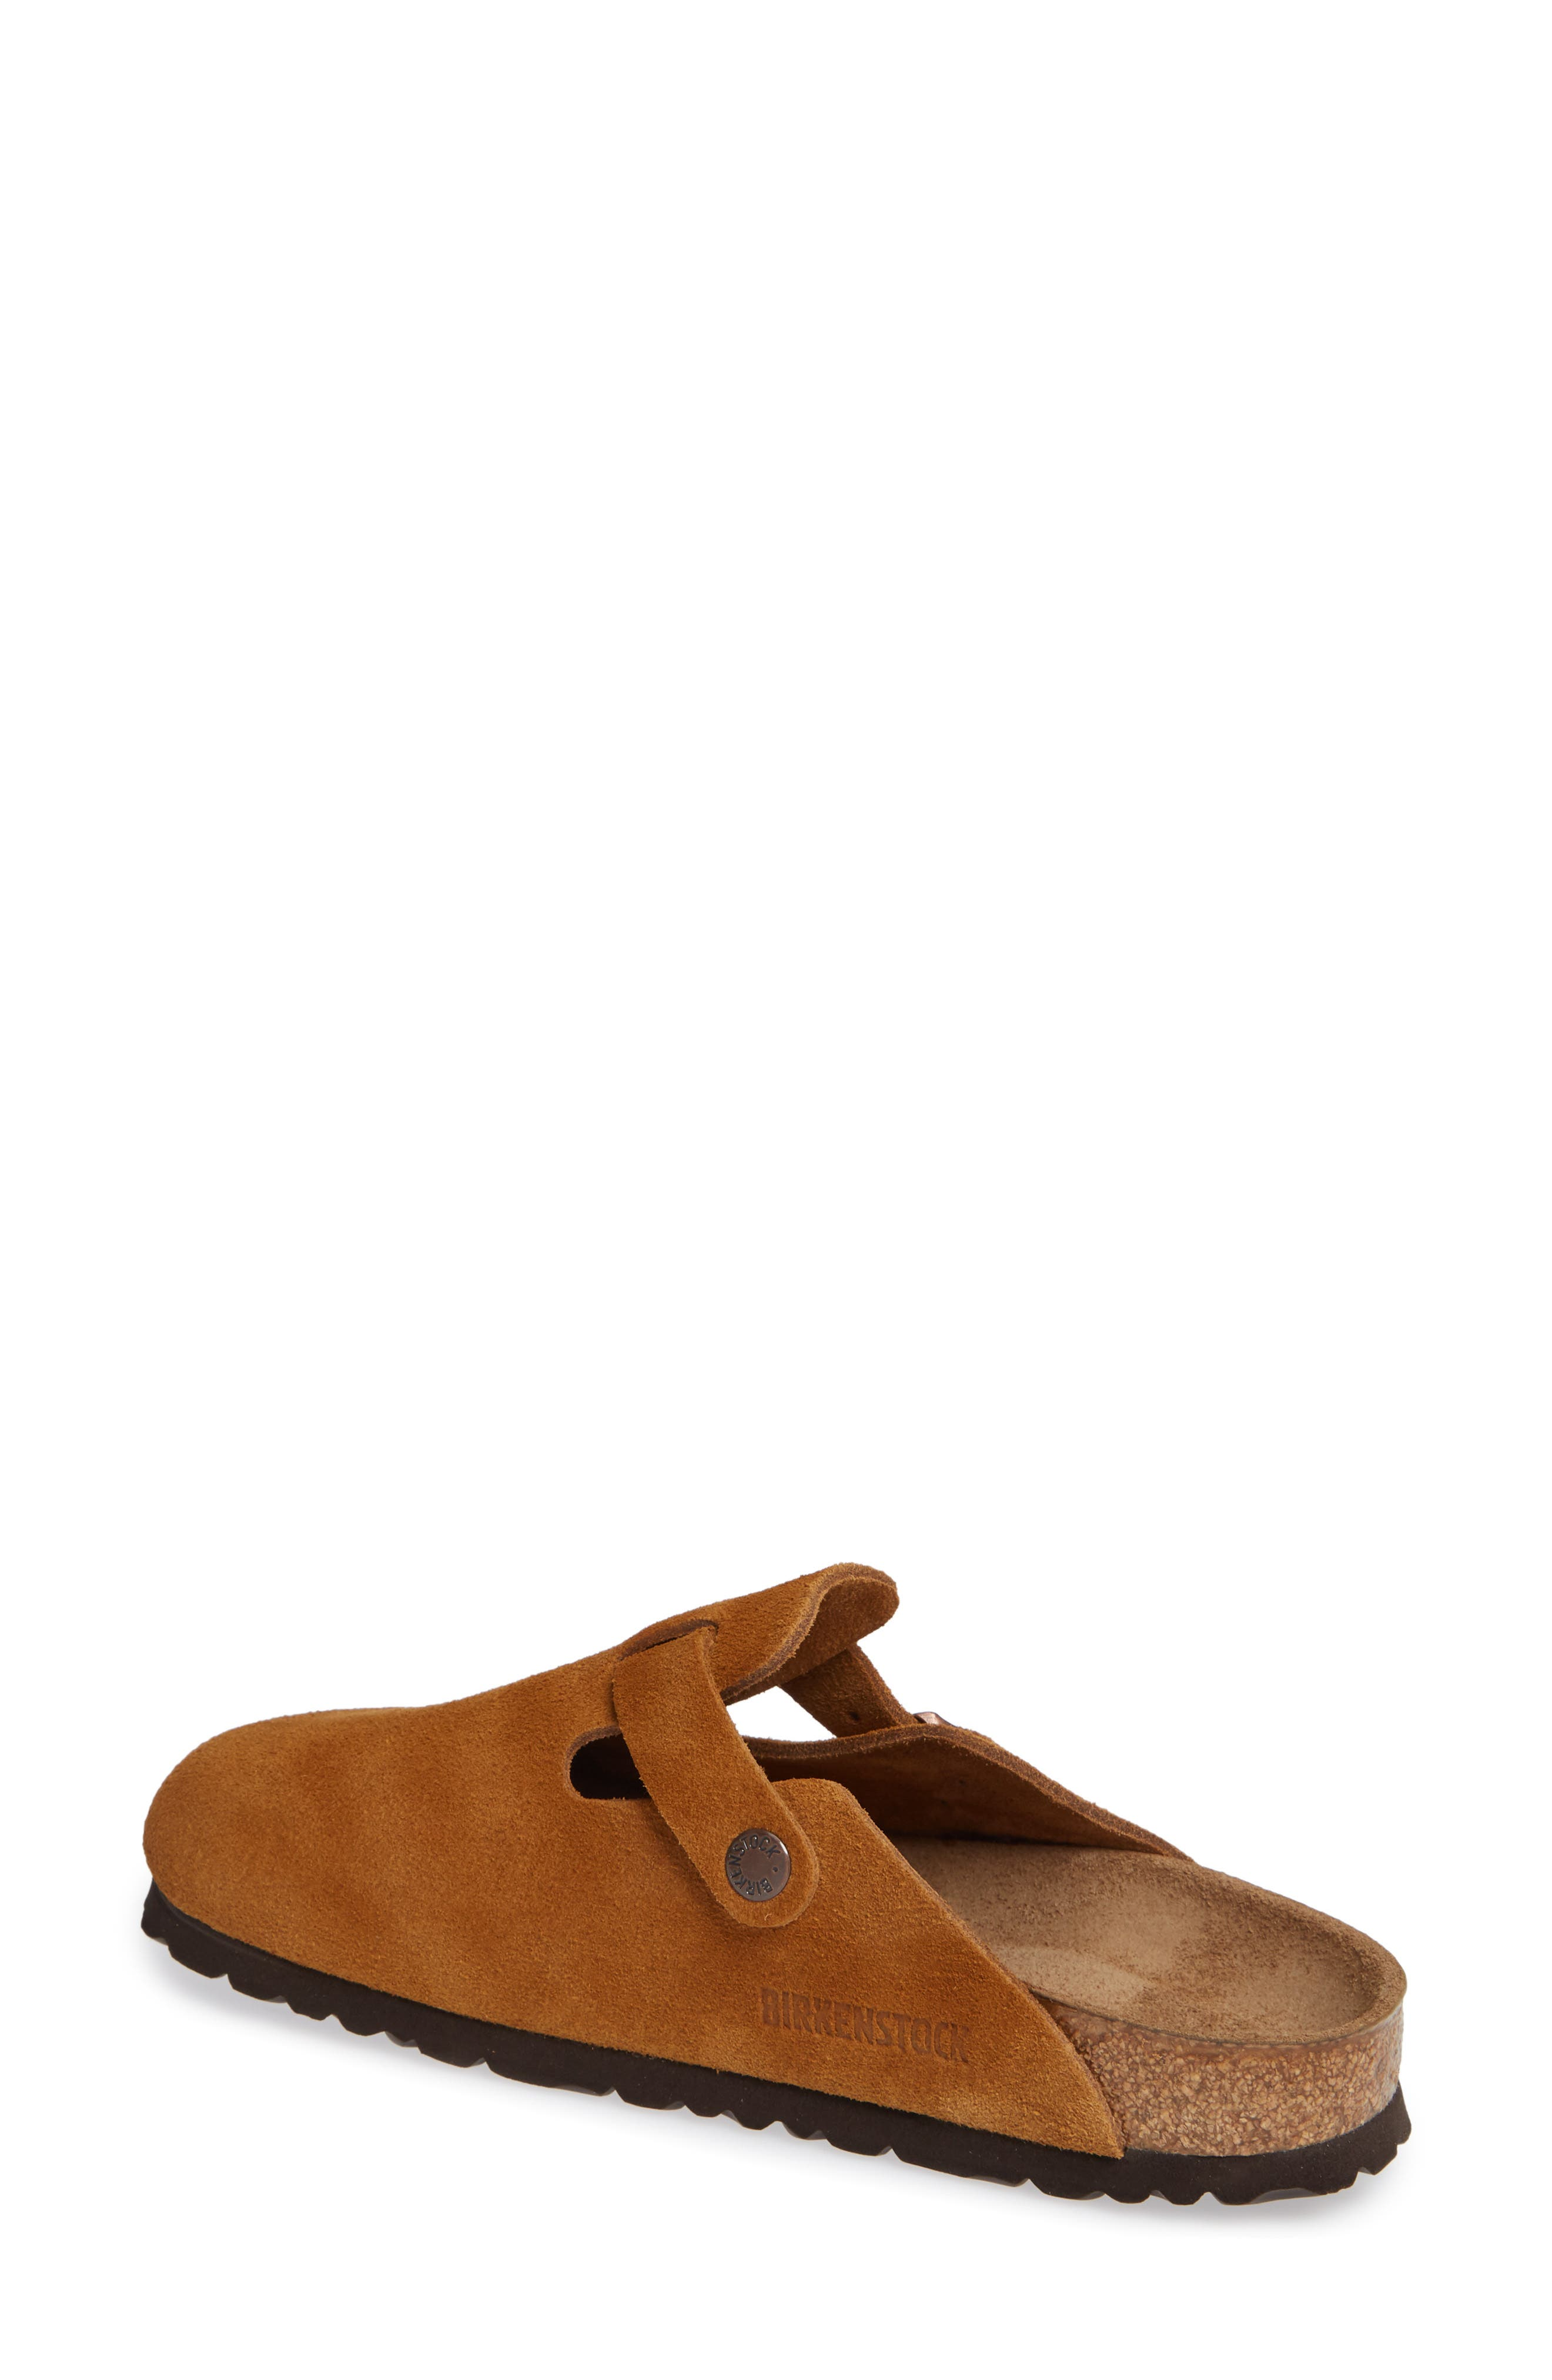 'Boston' Soft Footbed Clog,                             Alternate thumbnail 2, color,                             MINK SUEDE